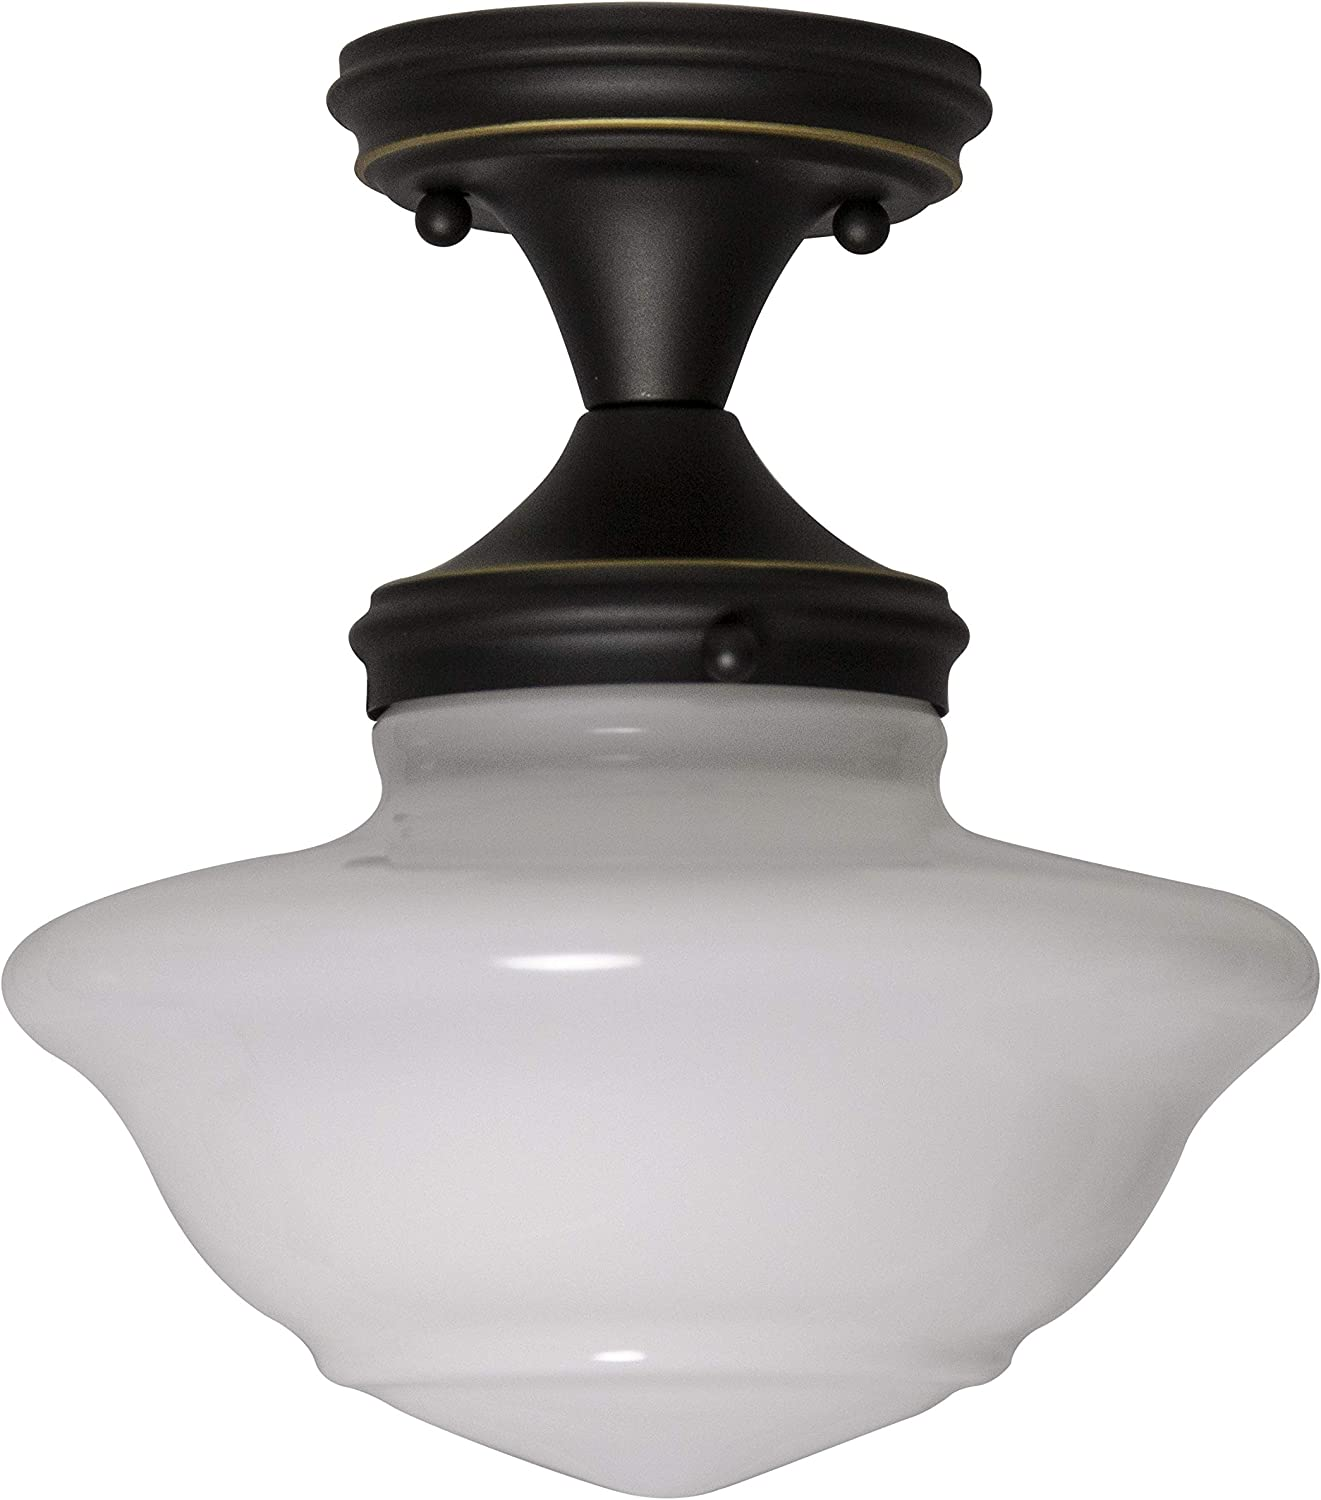 Shop Schoolhouse Modern Industrial Farmhouse Indoor Dimmable Light from Amazon on Openhaus